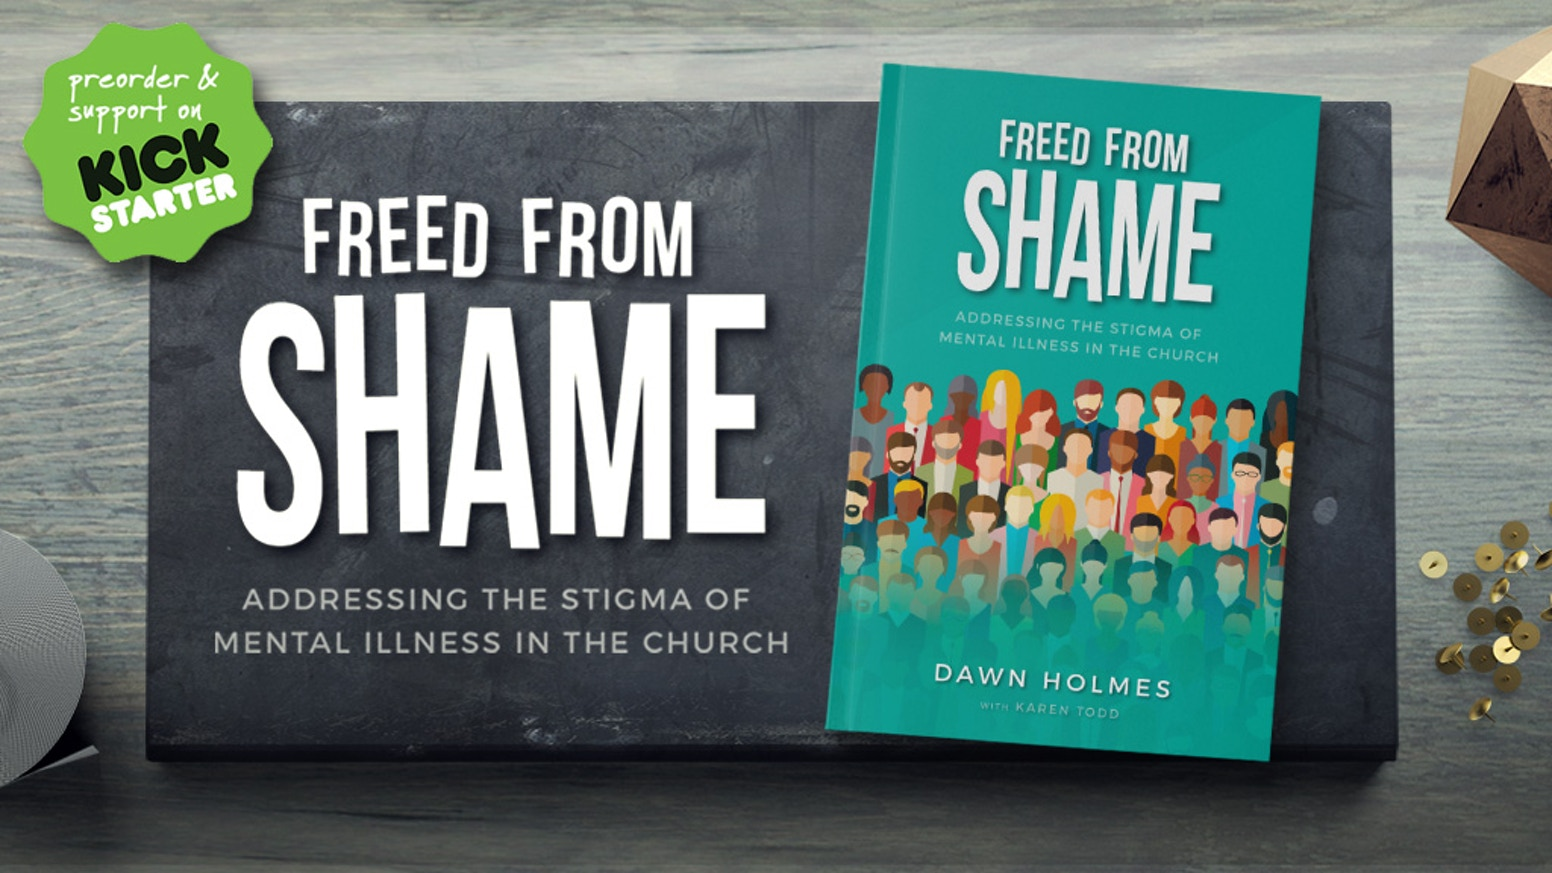 Addressing Mental Health Issues >> Freed From Shame Addressing Mental Illness In The Church By Gary